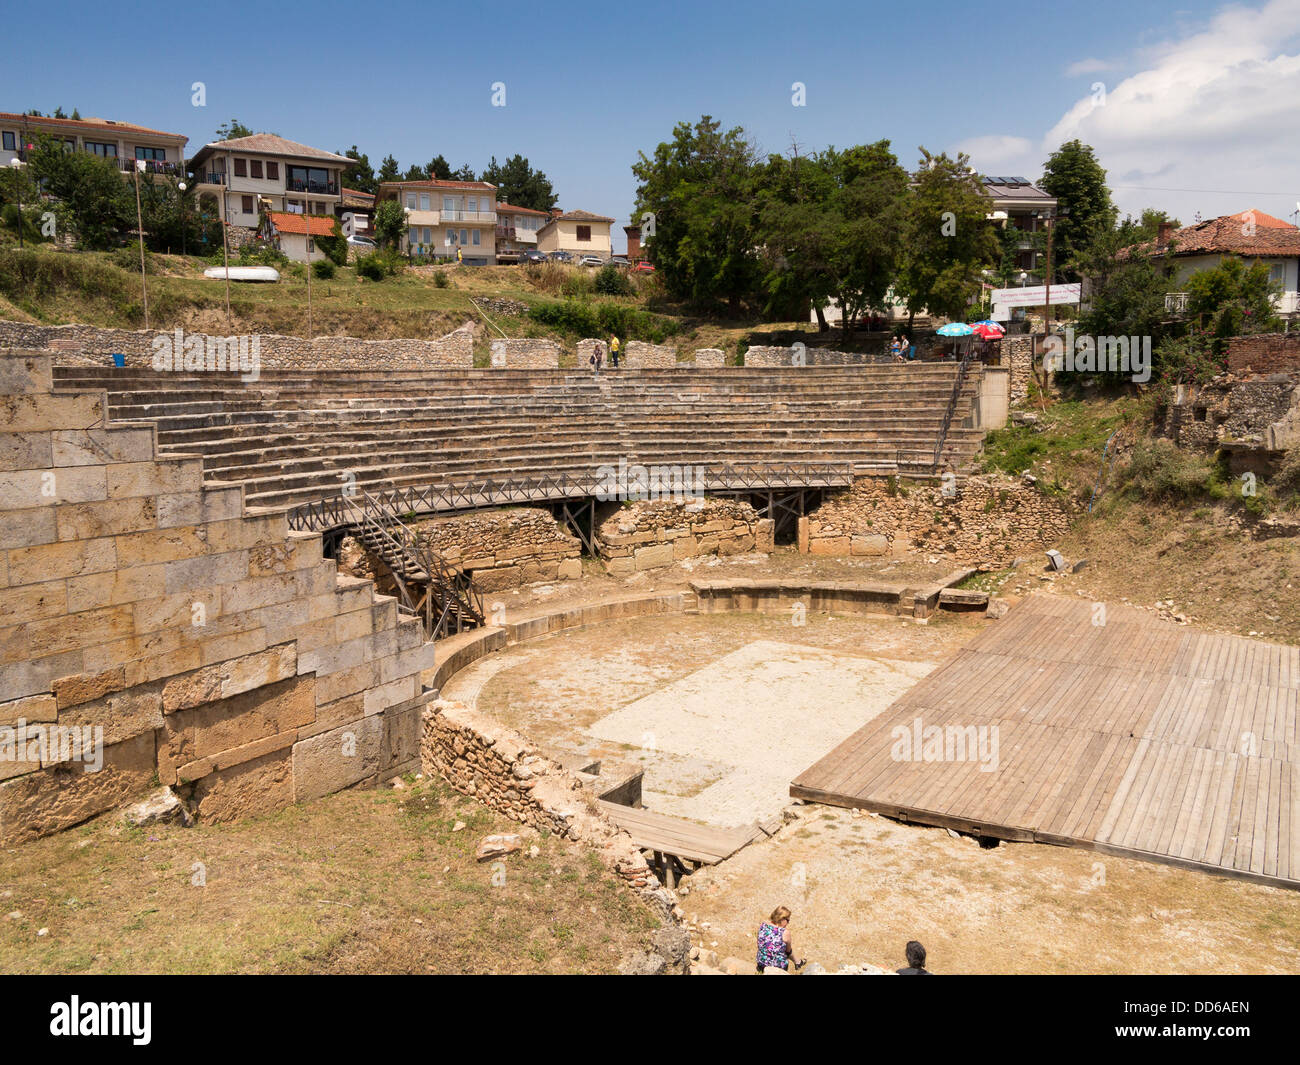 The Ancient Theatre in Ohrid, Macedonia, Europe - an amphitheatre from the Hellenistic period - Stock Image